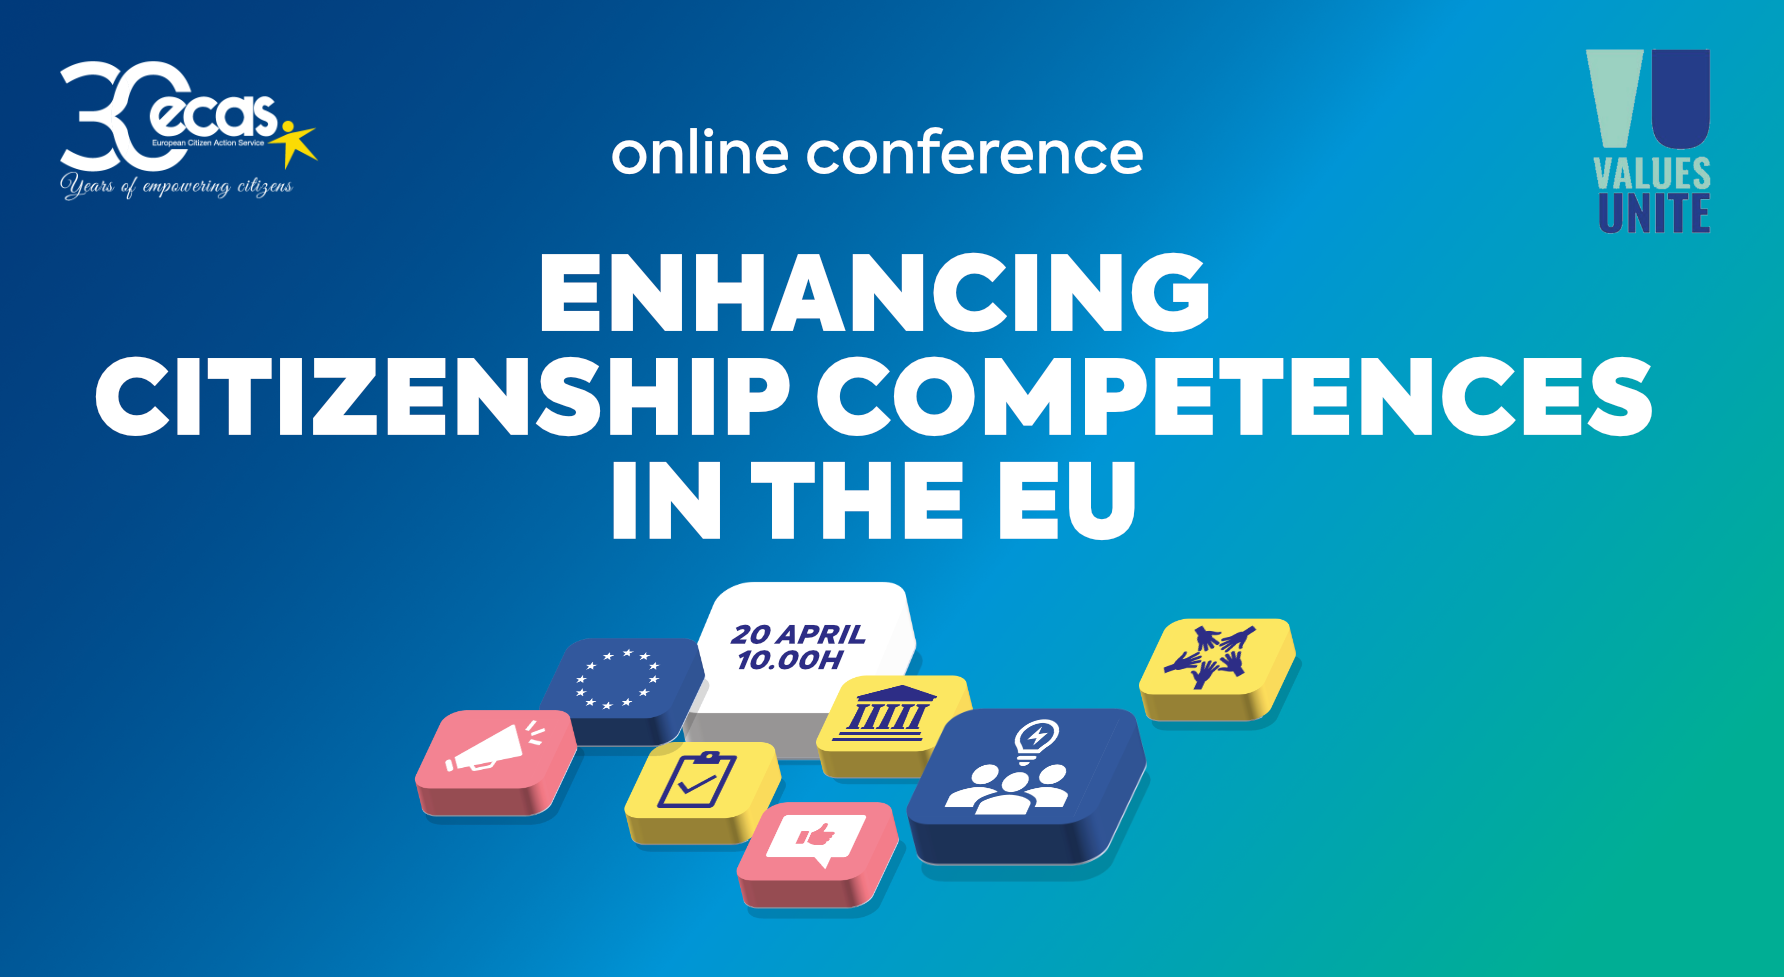 20 APRIL: Online Conference Enhancing citizenship competences